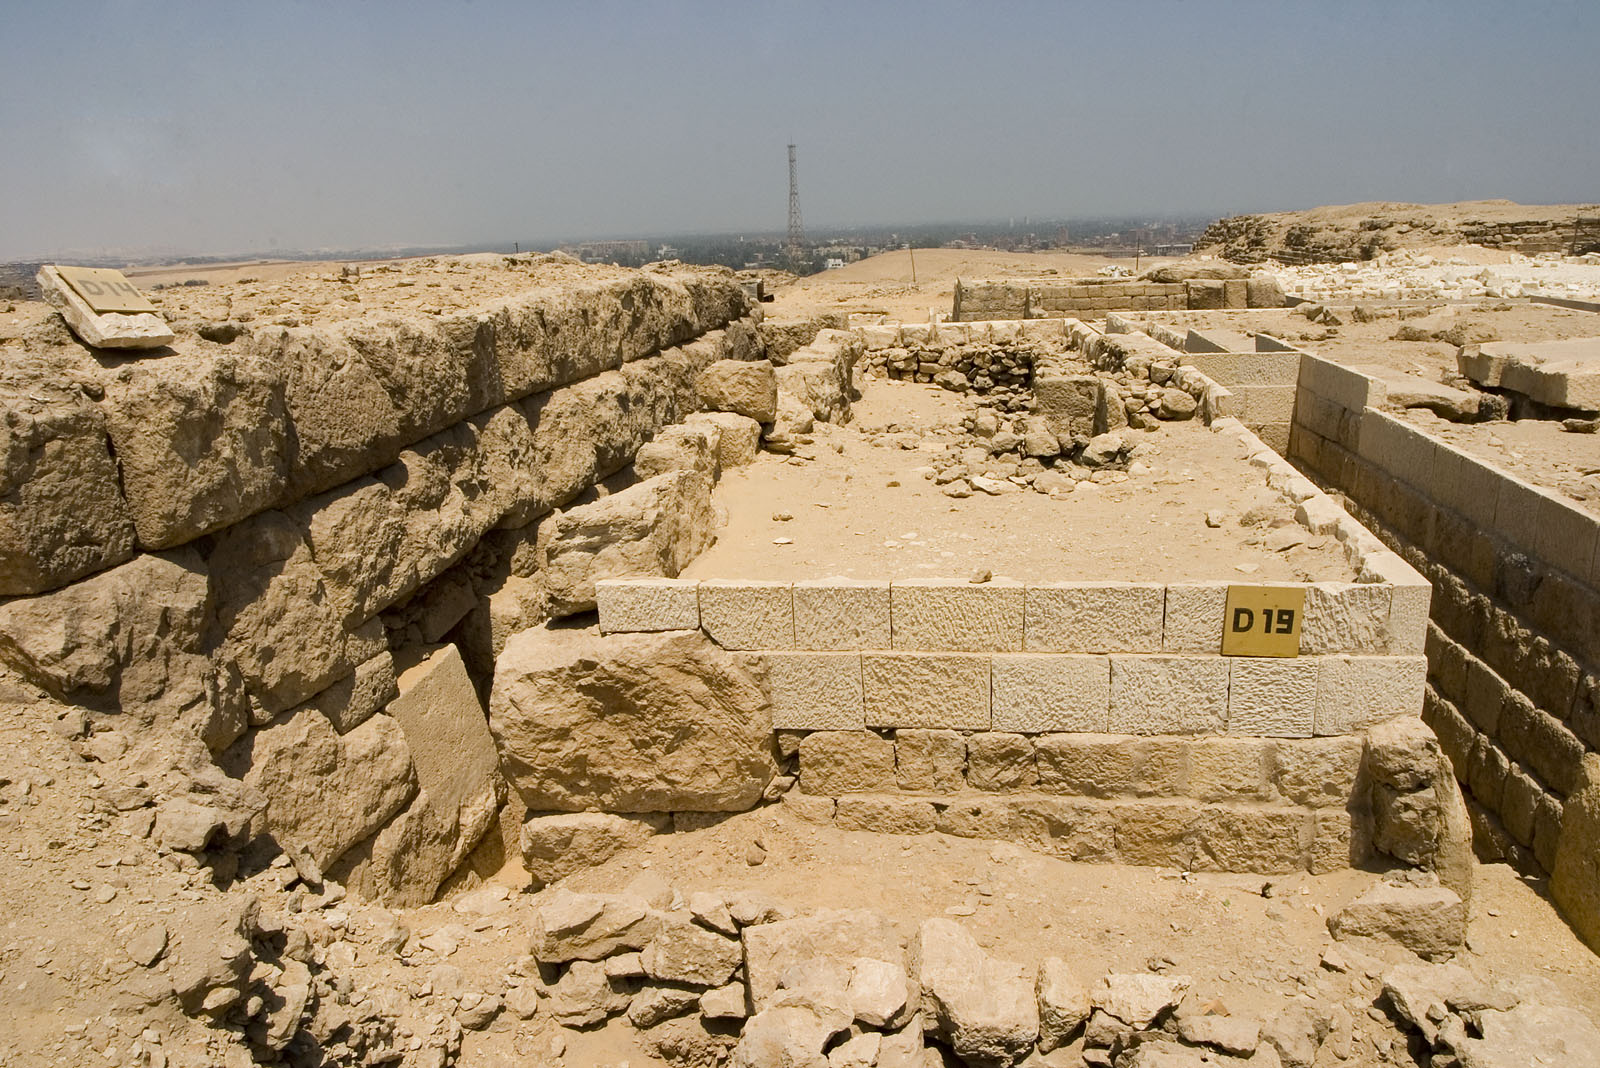 Western Cemetery: Site: Giza; View: D 19